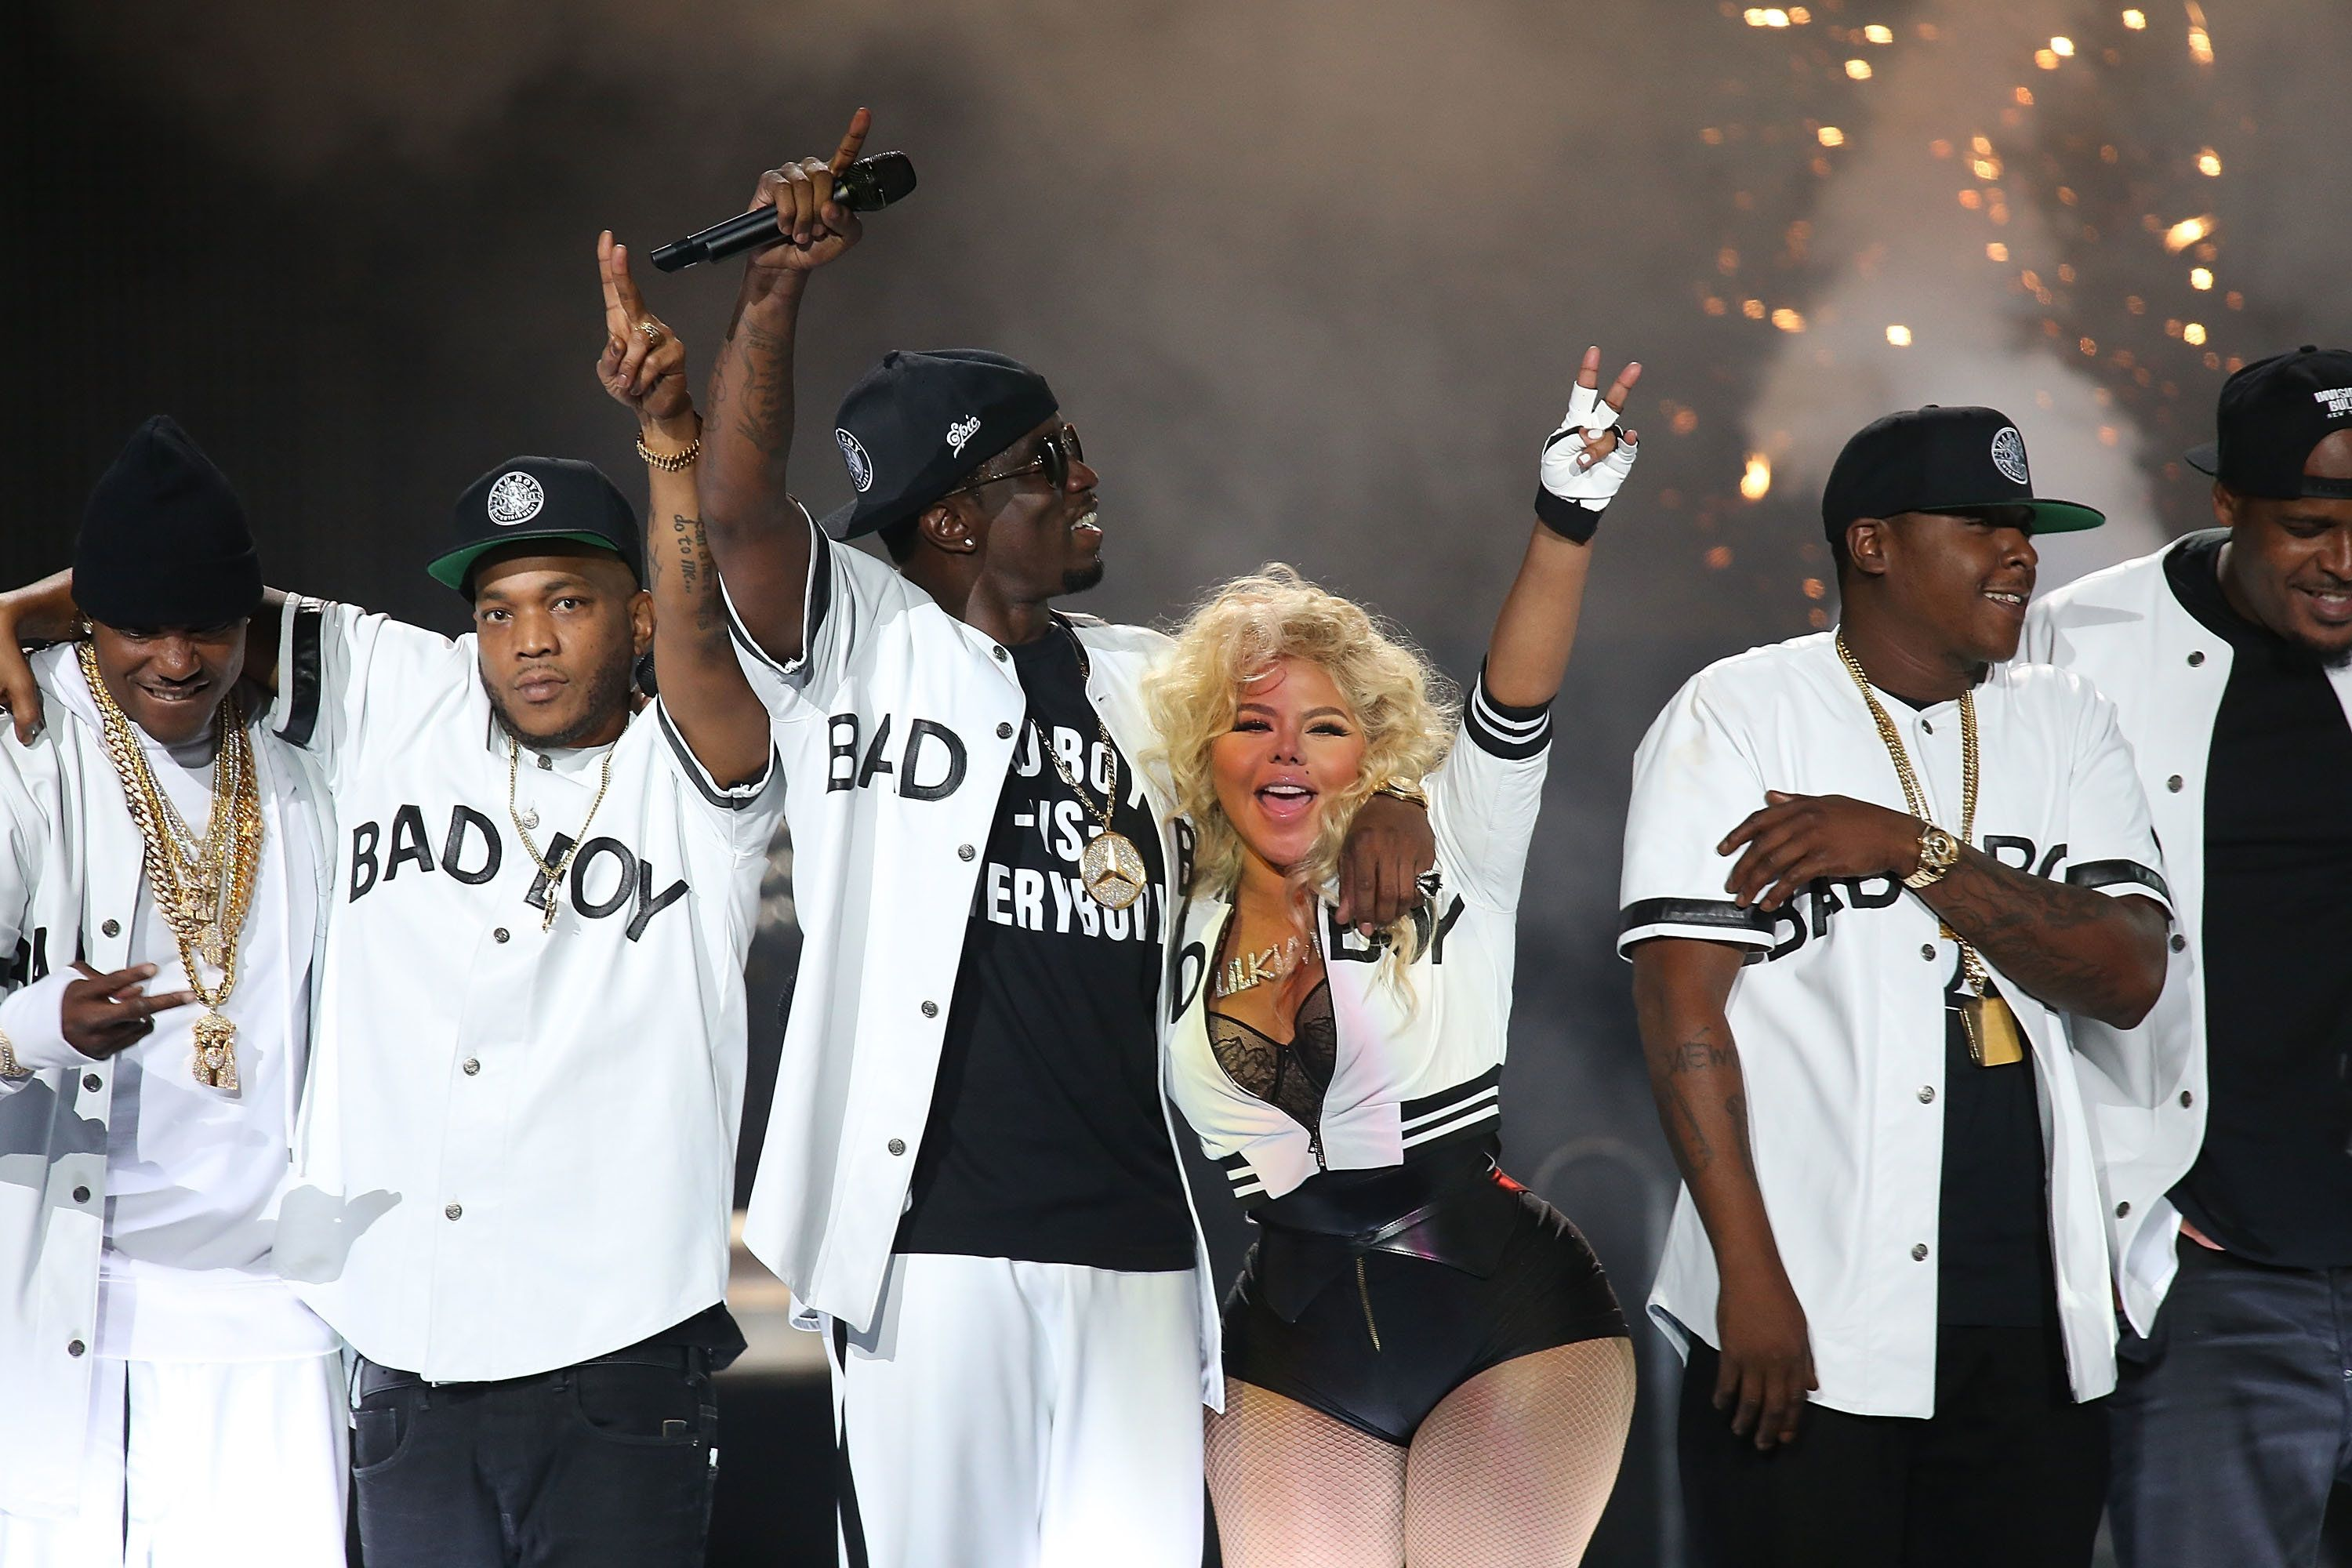 NEWARK, NJ - SEPTEMBER 25:  Sean 'Puff Daddy' Combs and Lil Kim perform during the Bad Boy Family Reunion Tour at Prudential Center on September 25, 2016 in Newark, New Jersey.  (Photo by Manny Carabel/Getty Images)